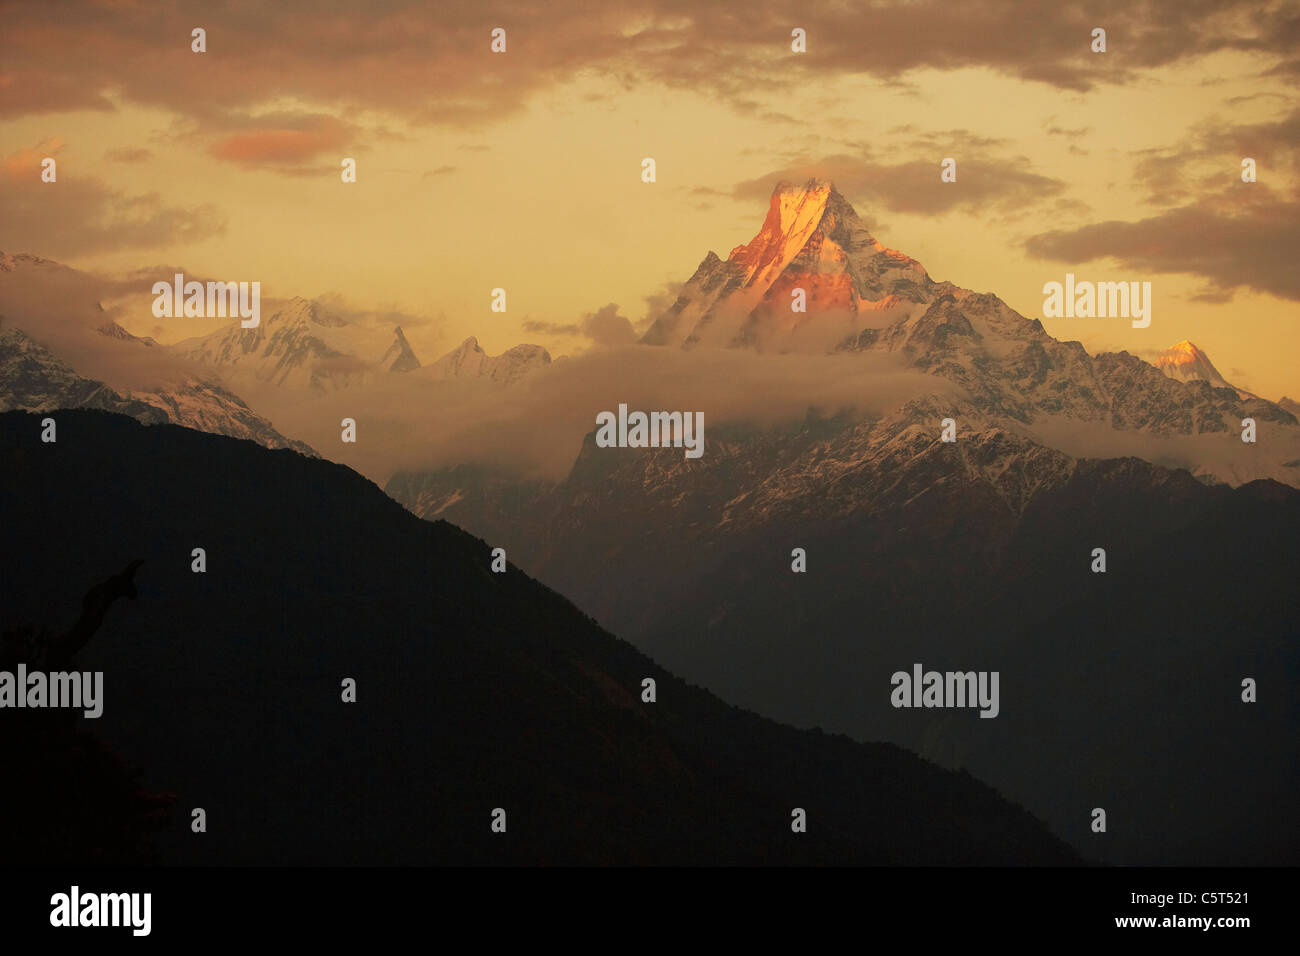 Sunset over Machhapuchhare (Machapuchare) or fish tail mountain seem from Tadapani on the Annapurna Trek, Himalayas, - Stock Image